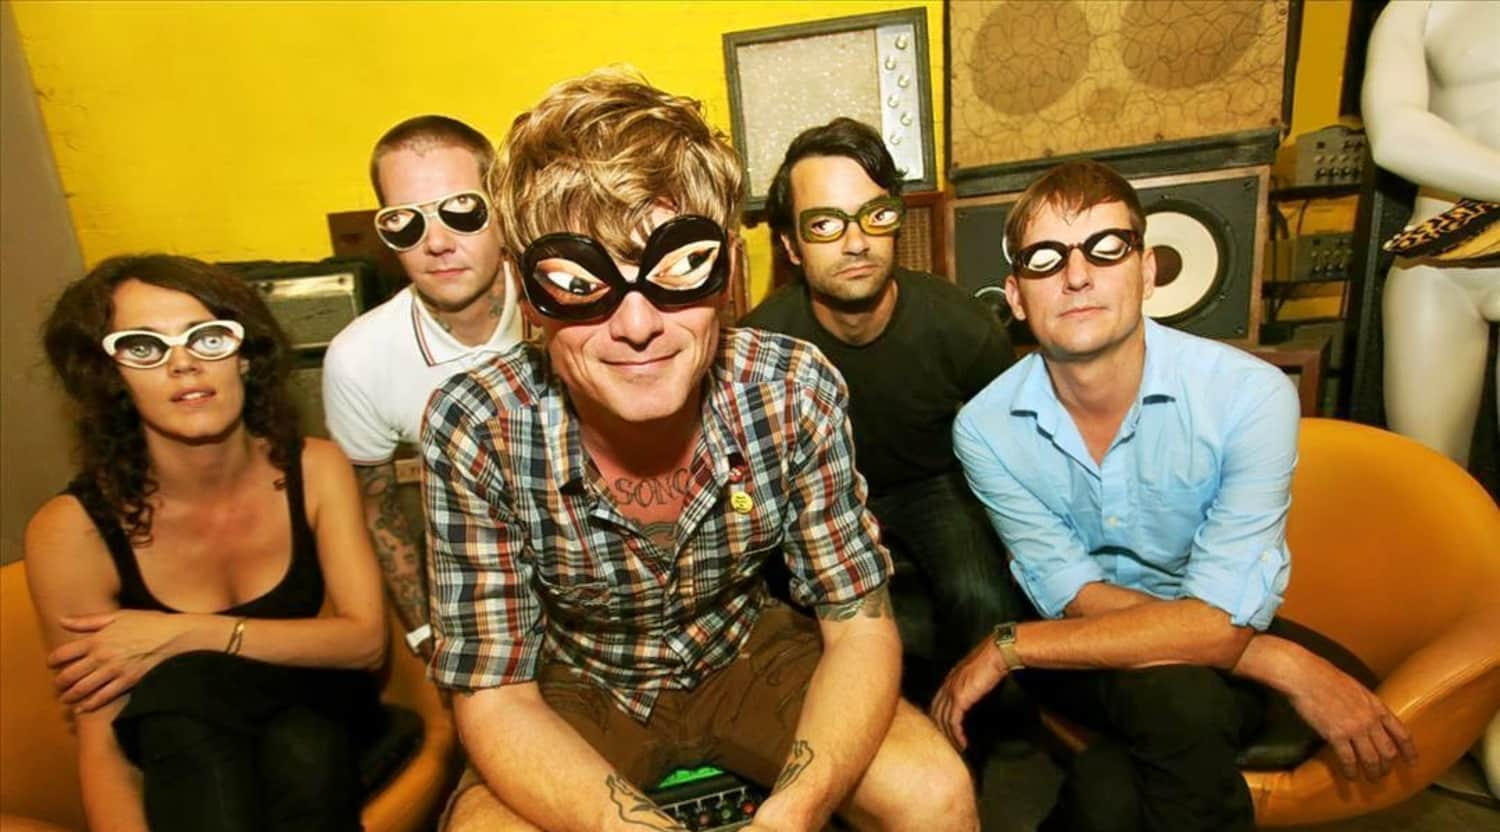 Thee OH Sees Tickets - Thee OH Sees Concert Tickets and Tour Dates - StubHub